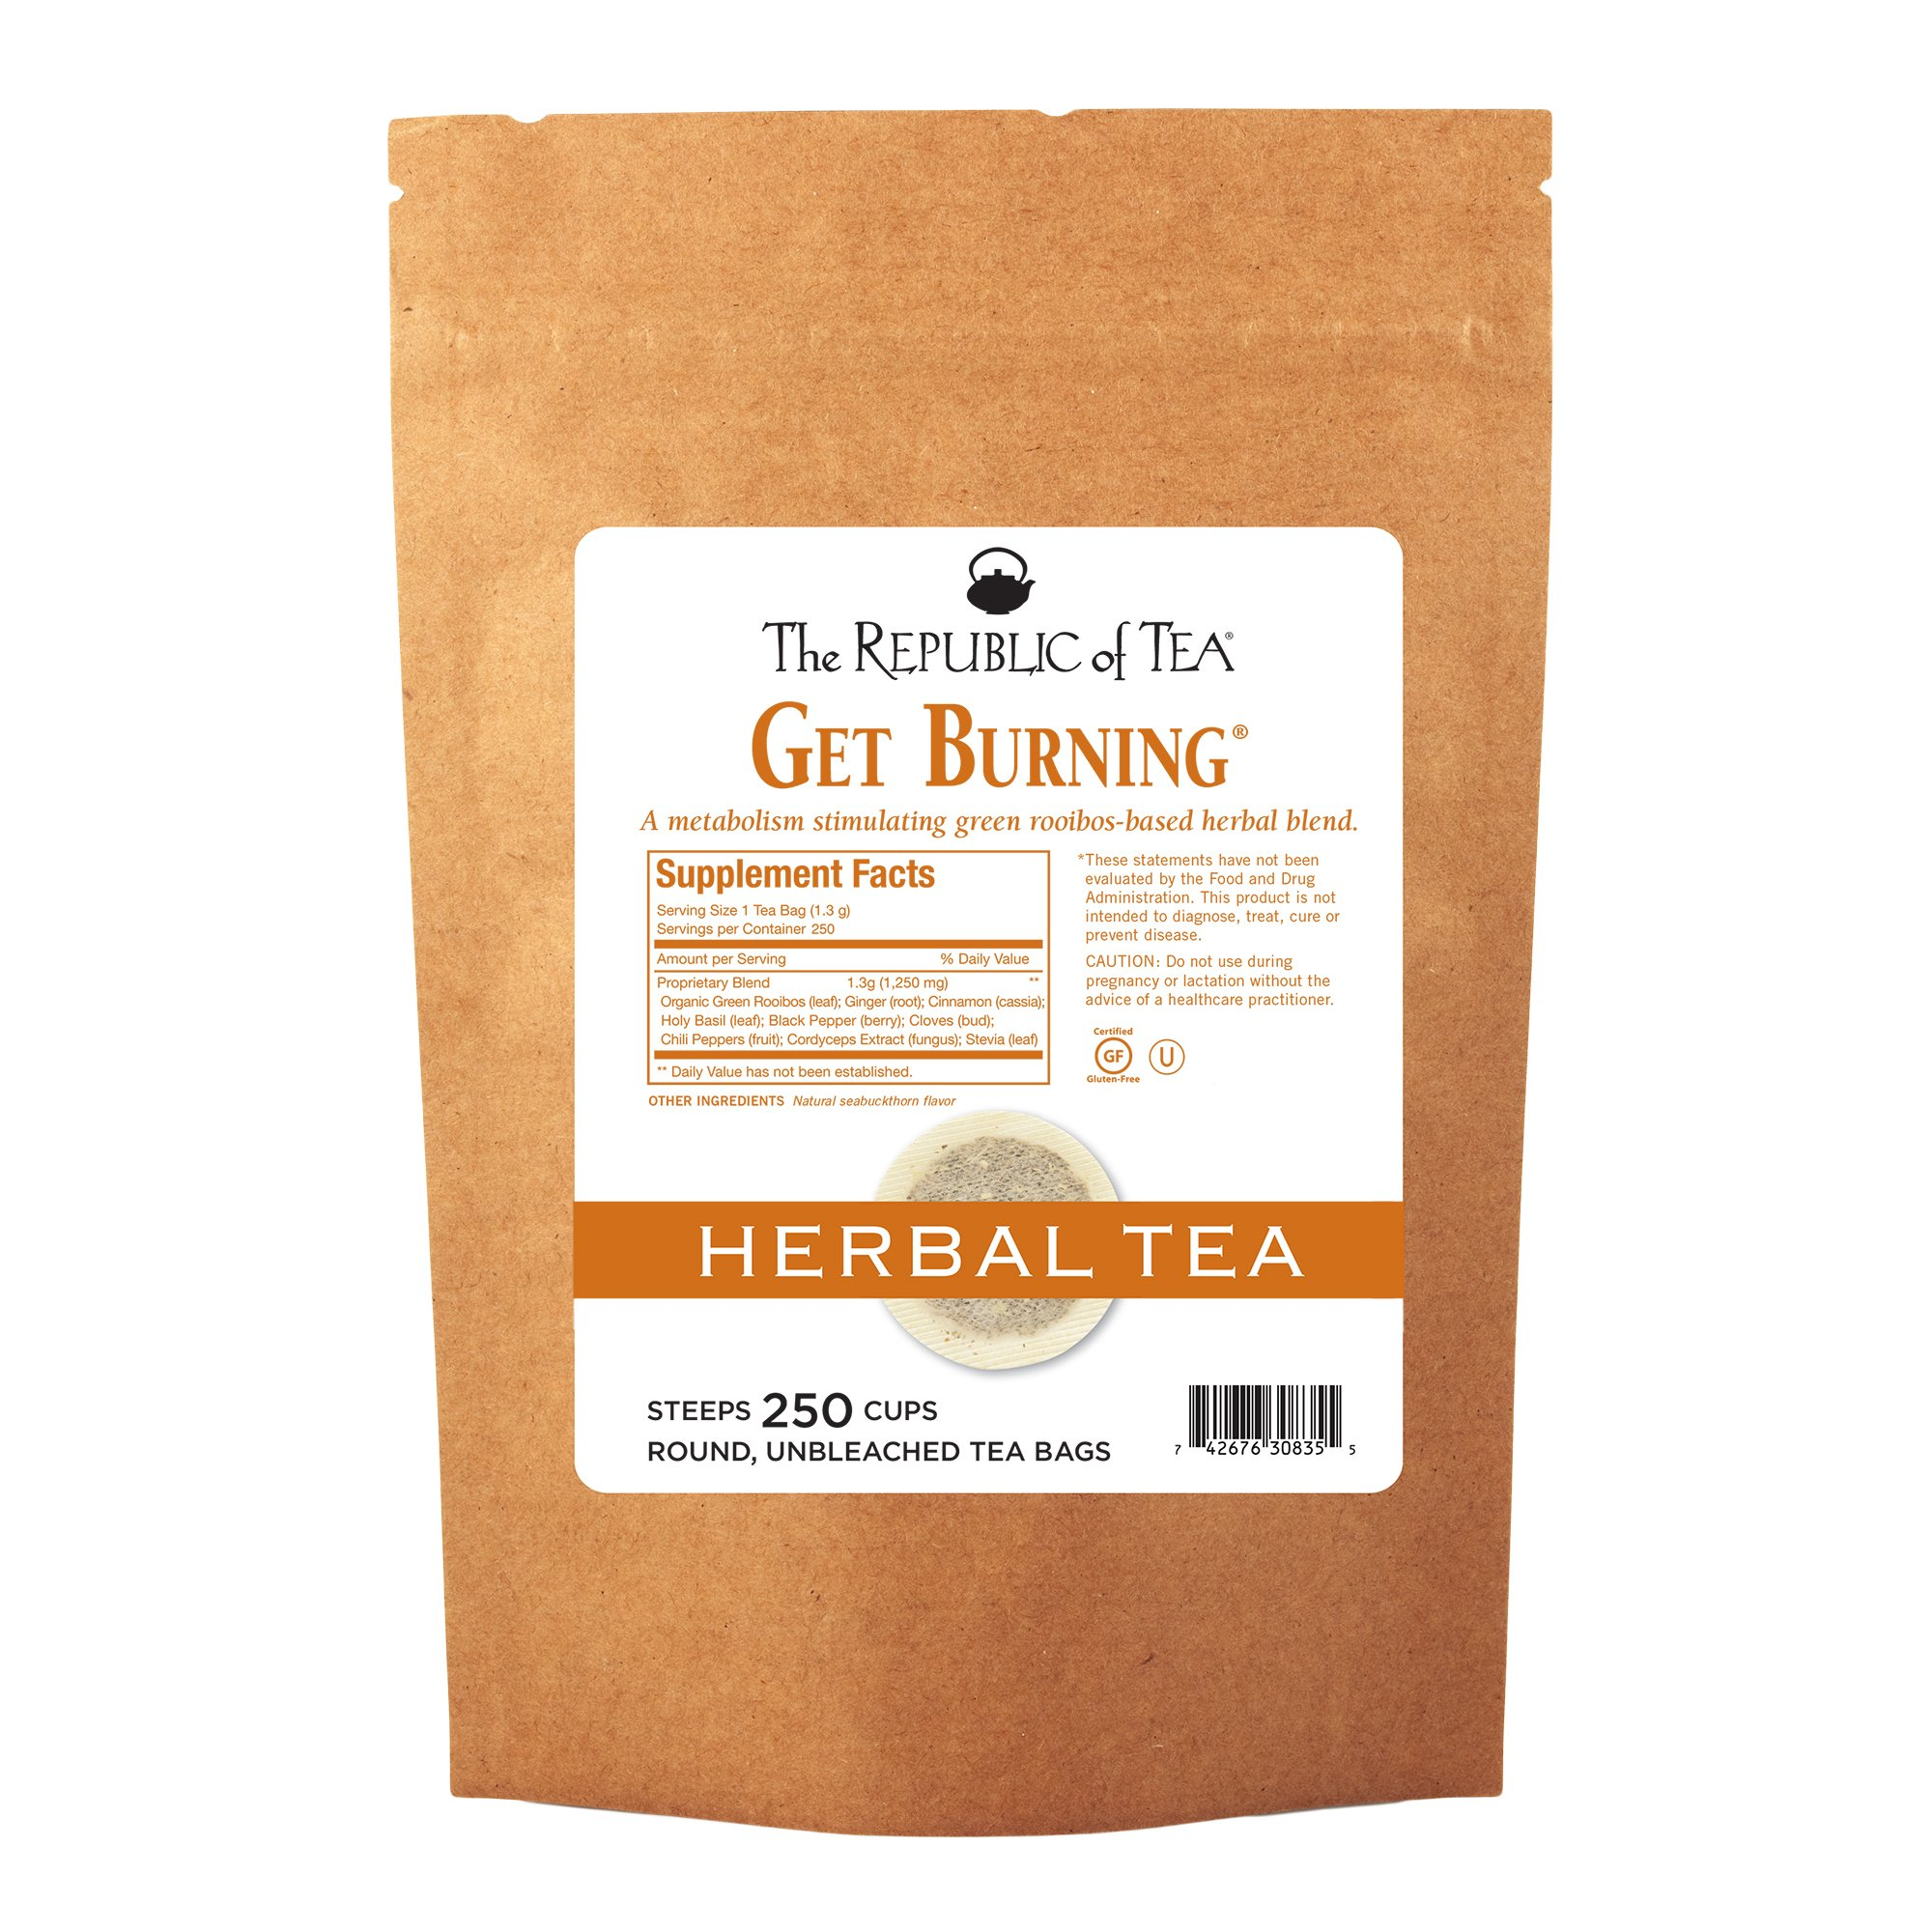 The Republic Of Tea Be Active Green Rooibos Tea Get Burning - Herb Tea For Metabolism, 250 Tea Bags